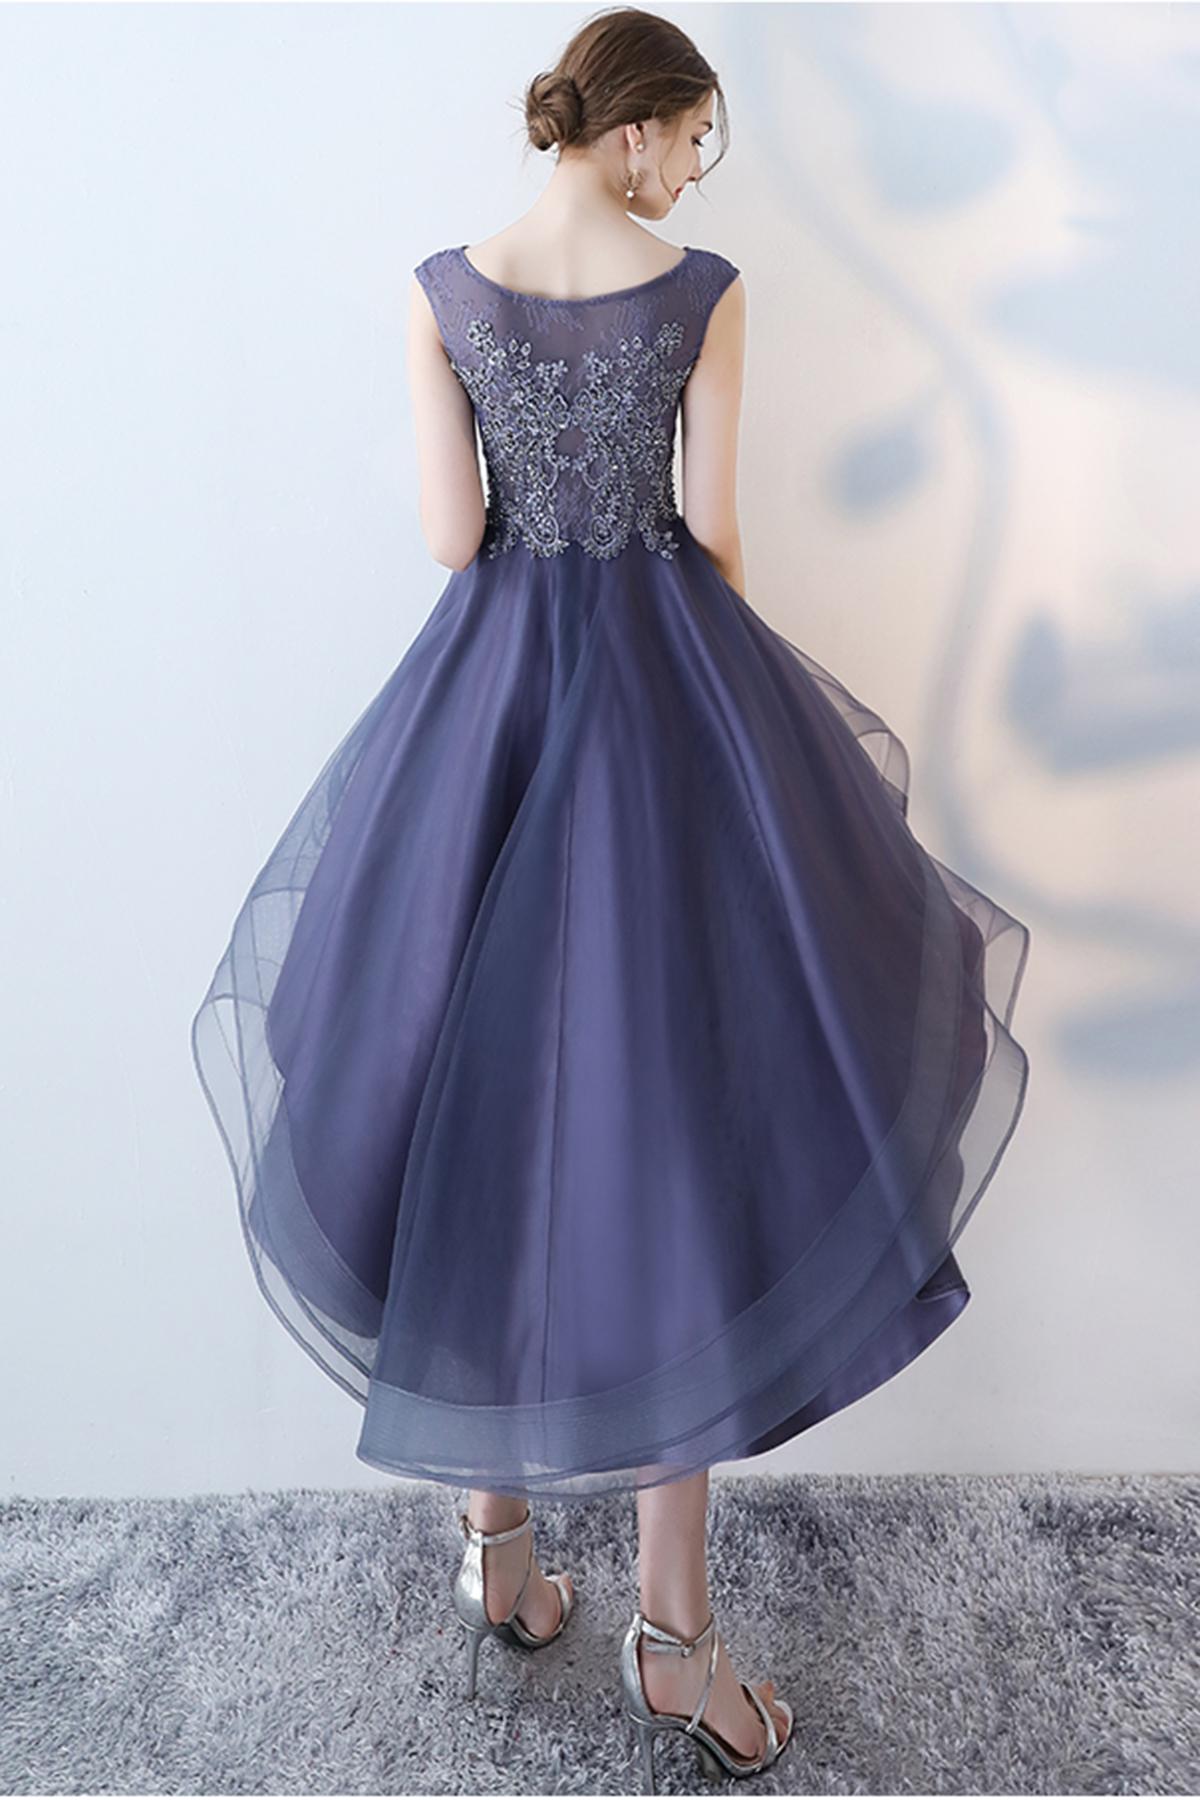 Stylish navy blue tulle high low halter sleeves homecoming dress ...